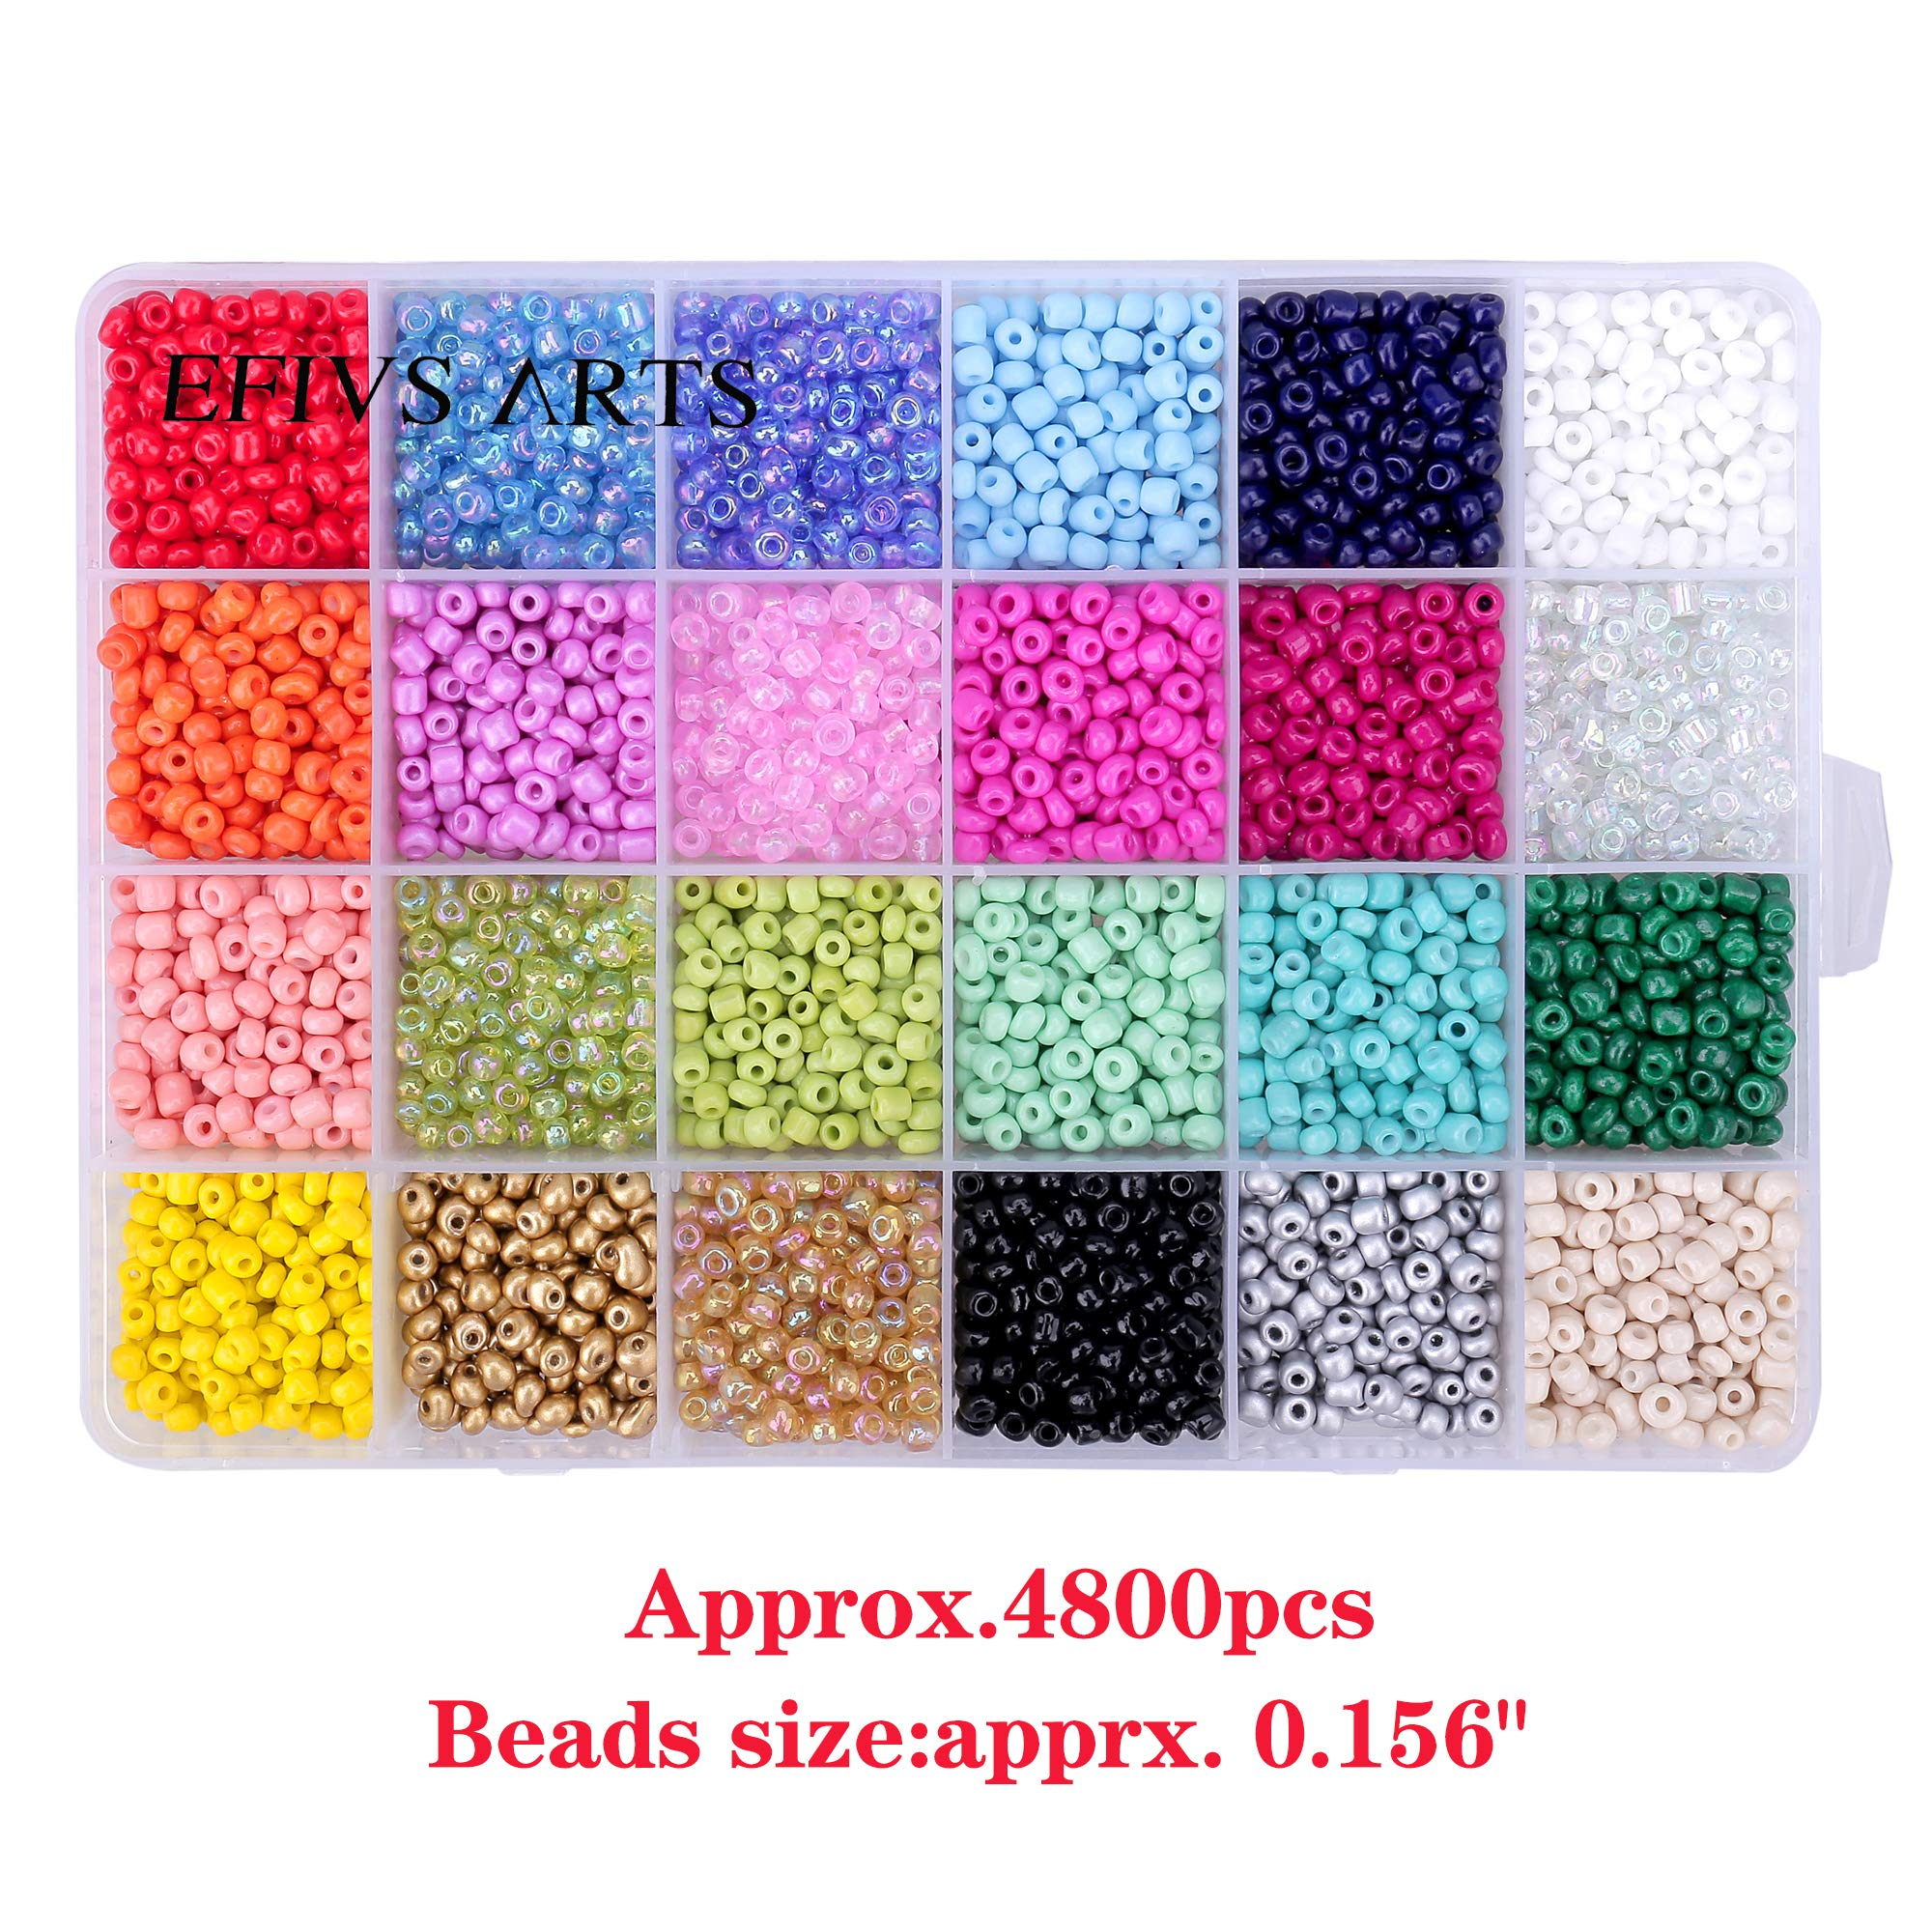 Efivs Arts Glass Seed Beads,24 Colors 6/0 4mm Small Pony Beads Multicolor Beading Beads with Container Box for Jewelry Making - Approx 4800pcs by Efivs Arts